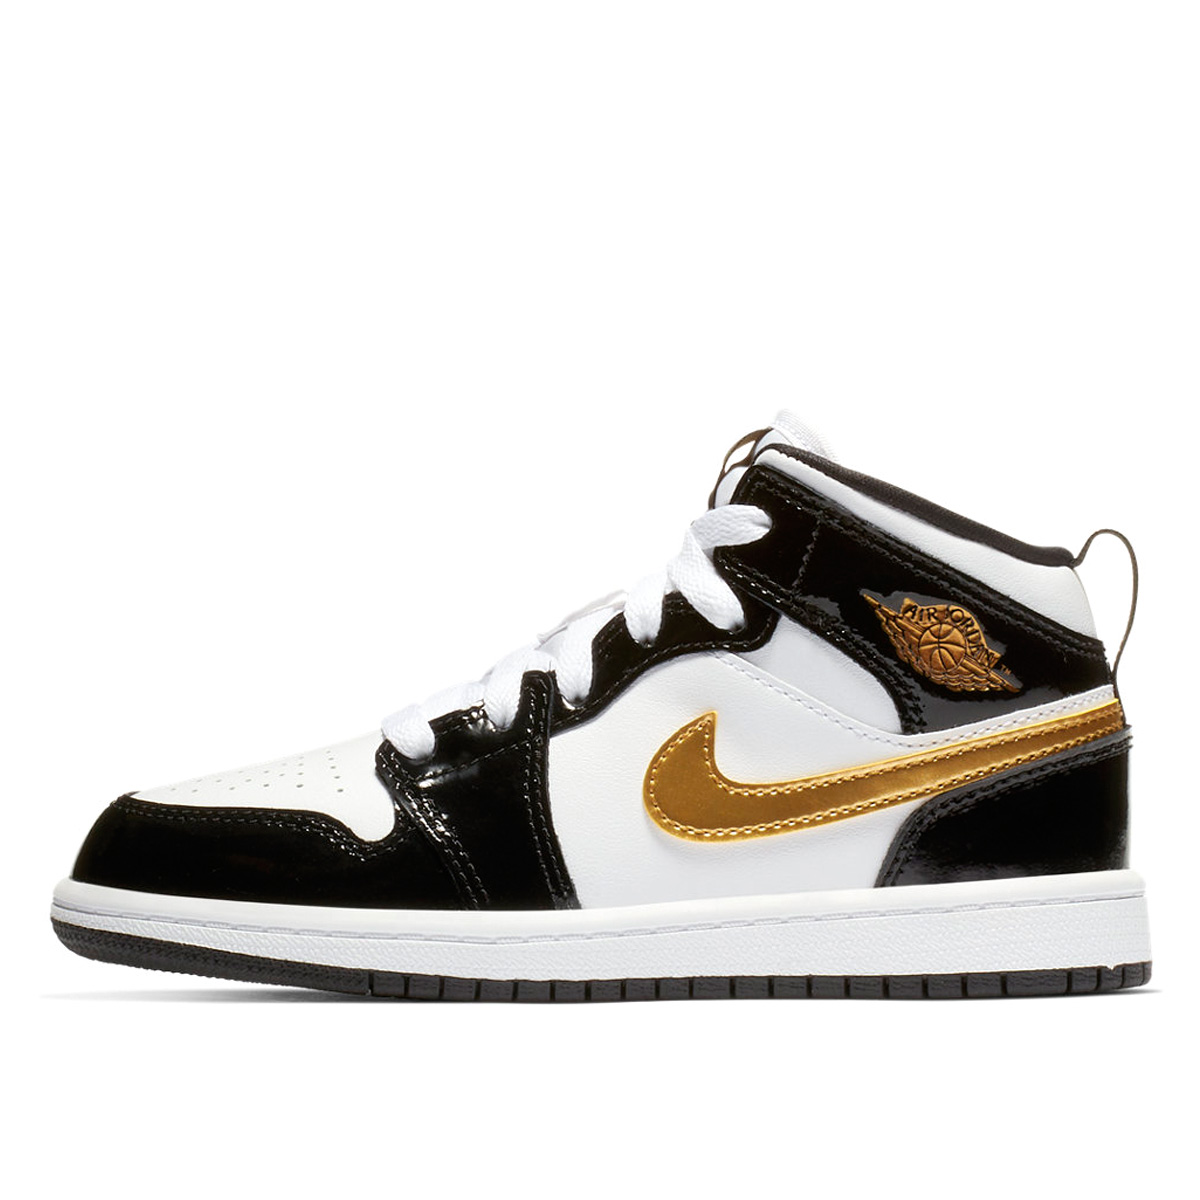 【キッズサイズ】【16-22cm】 NIKE AIR JORDAN 1 MID SE PS ナイキ エア ジョーダン 1 ミッド SE PS BLACK/METALLIC GOLD/WHITE bq6932-007